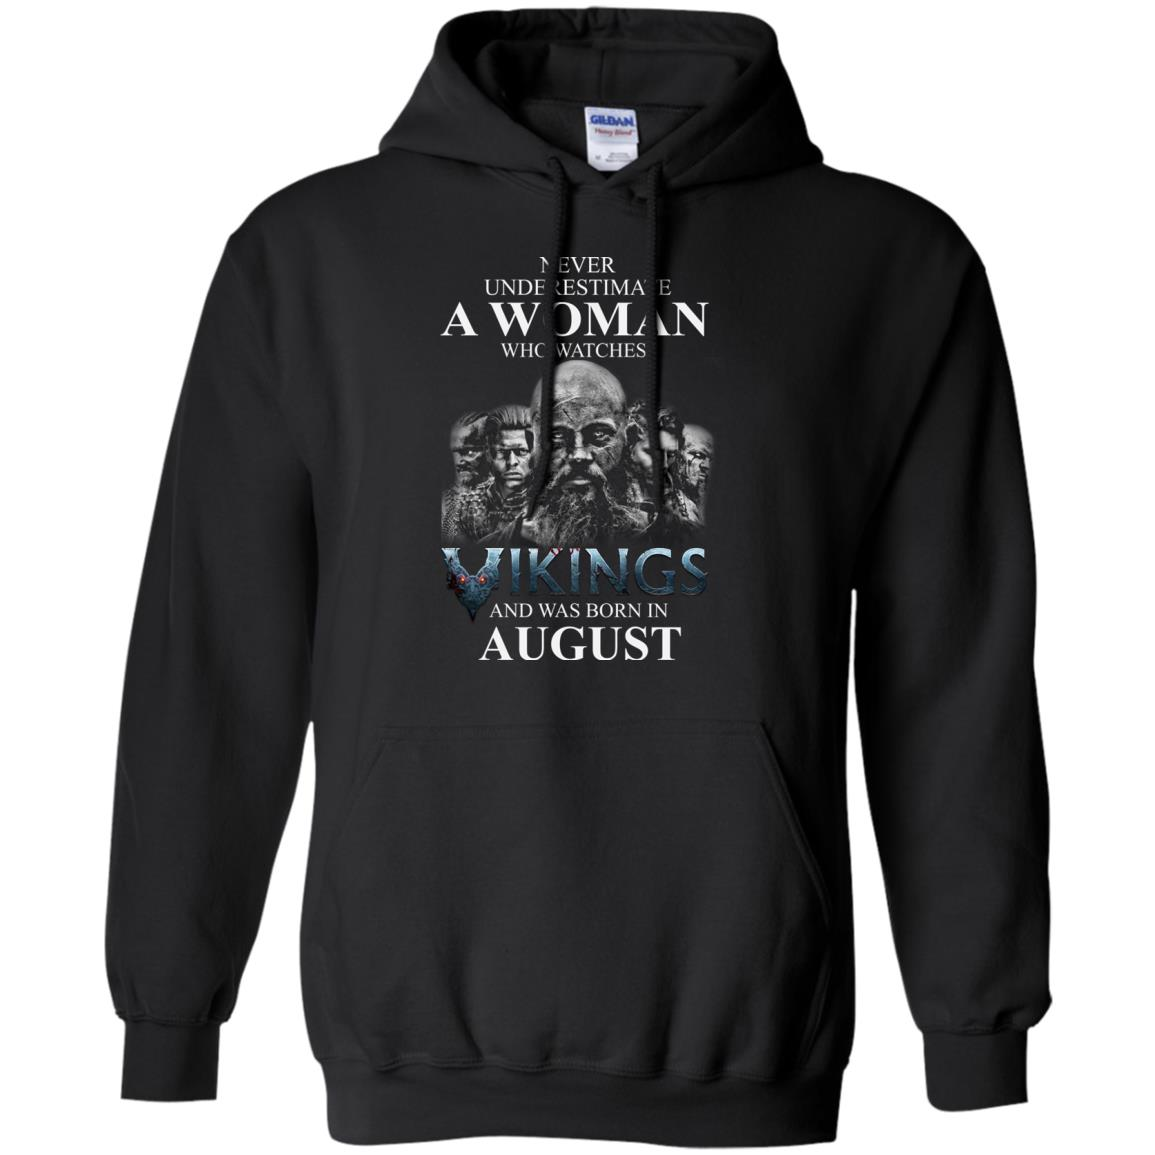 image 1271 - Never Underestimate A woman who watches Vikings and was born in August shirt